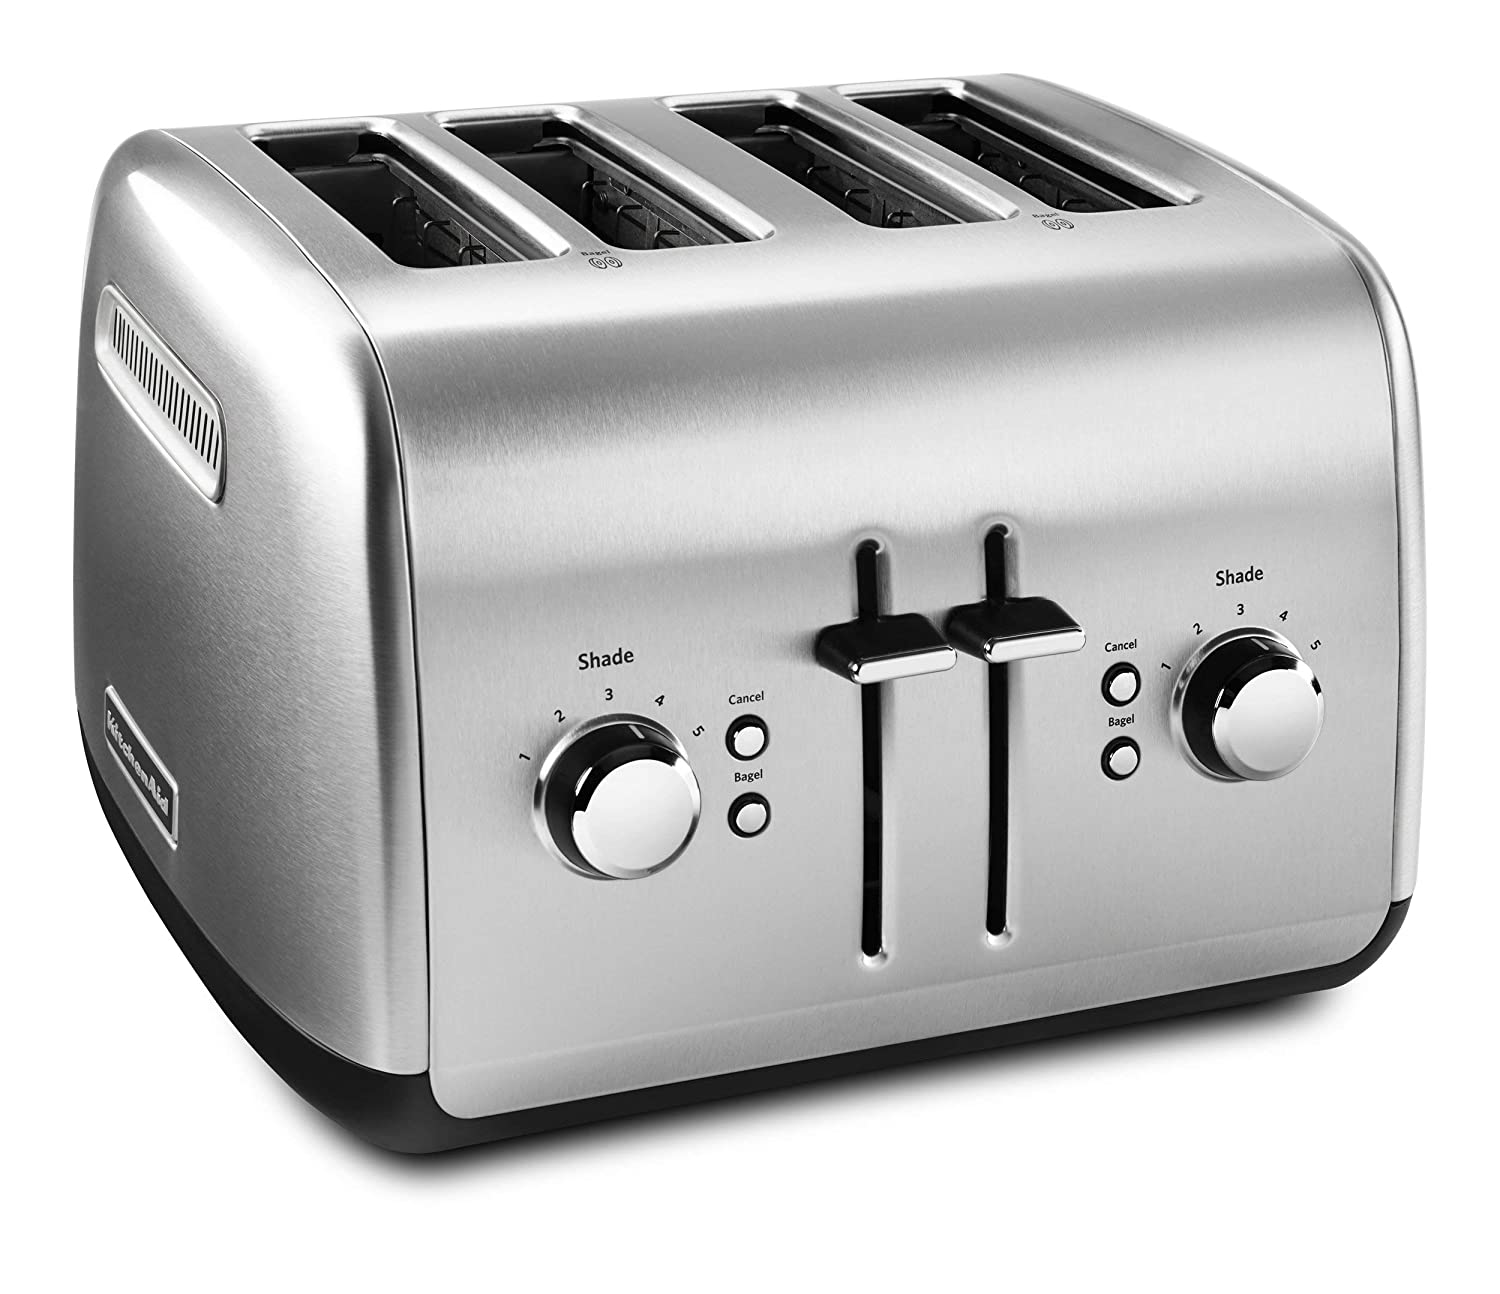 KitchenAid KMT4115SX Stainless Steel Toaster, Brushed Stainless Steel Renewed